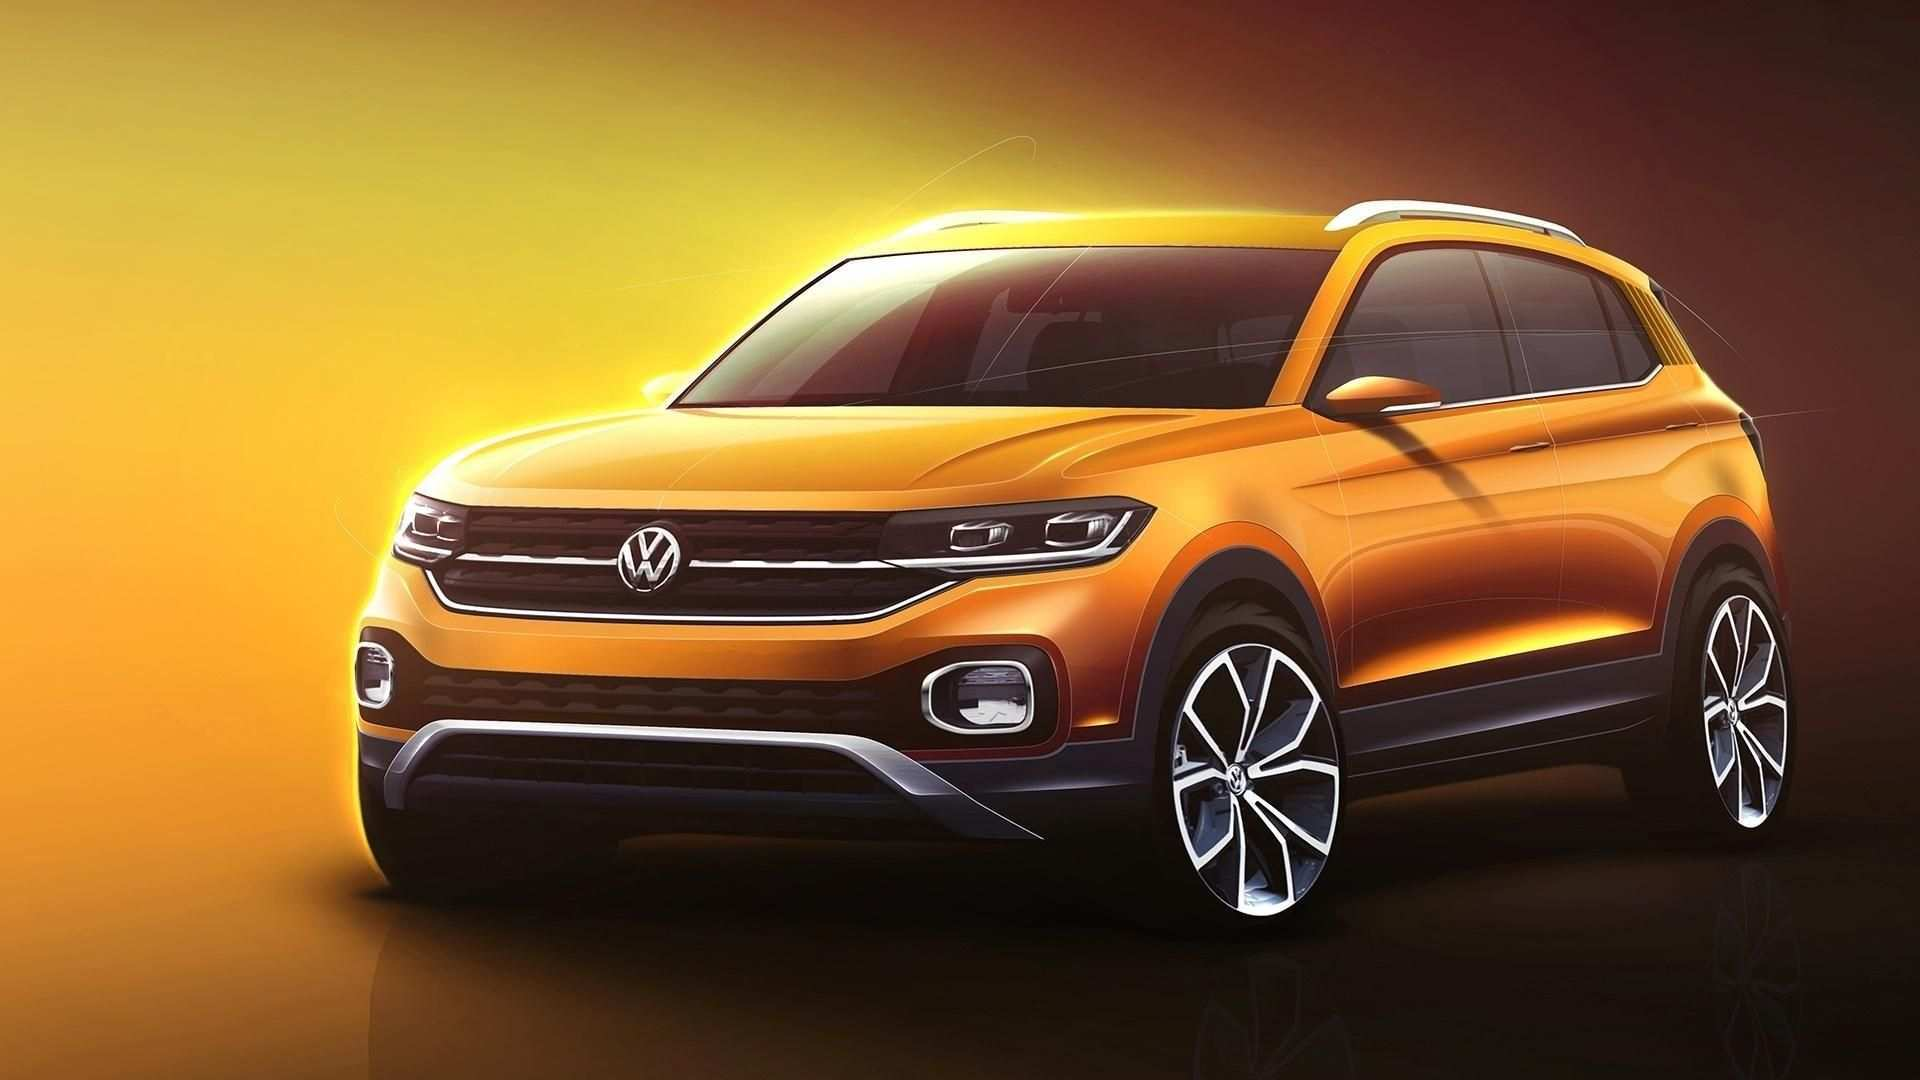 96 Best Review Volkswagen Lancamento 2019 Price Spesification for Volkswagen Lancamento 2019 Price